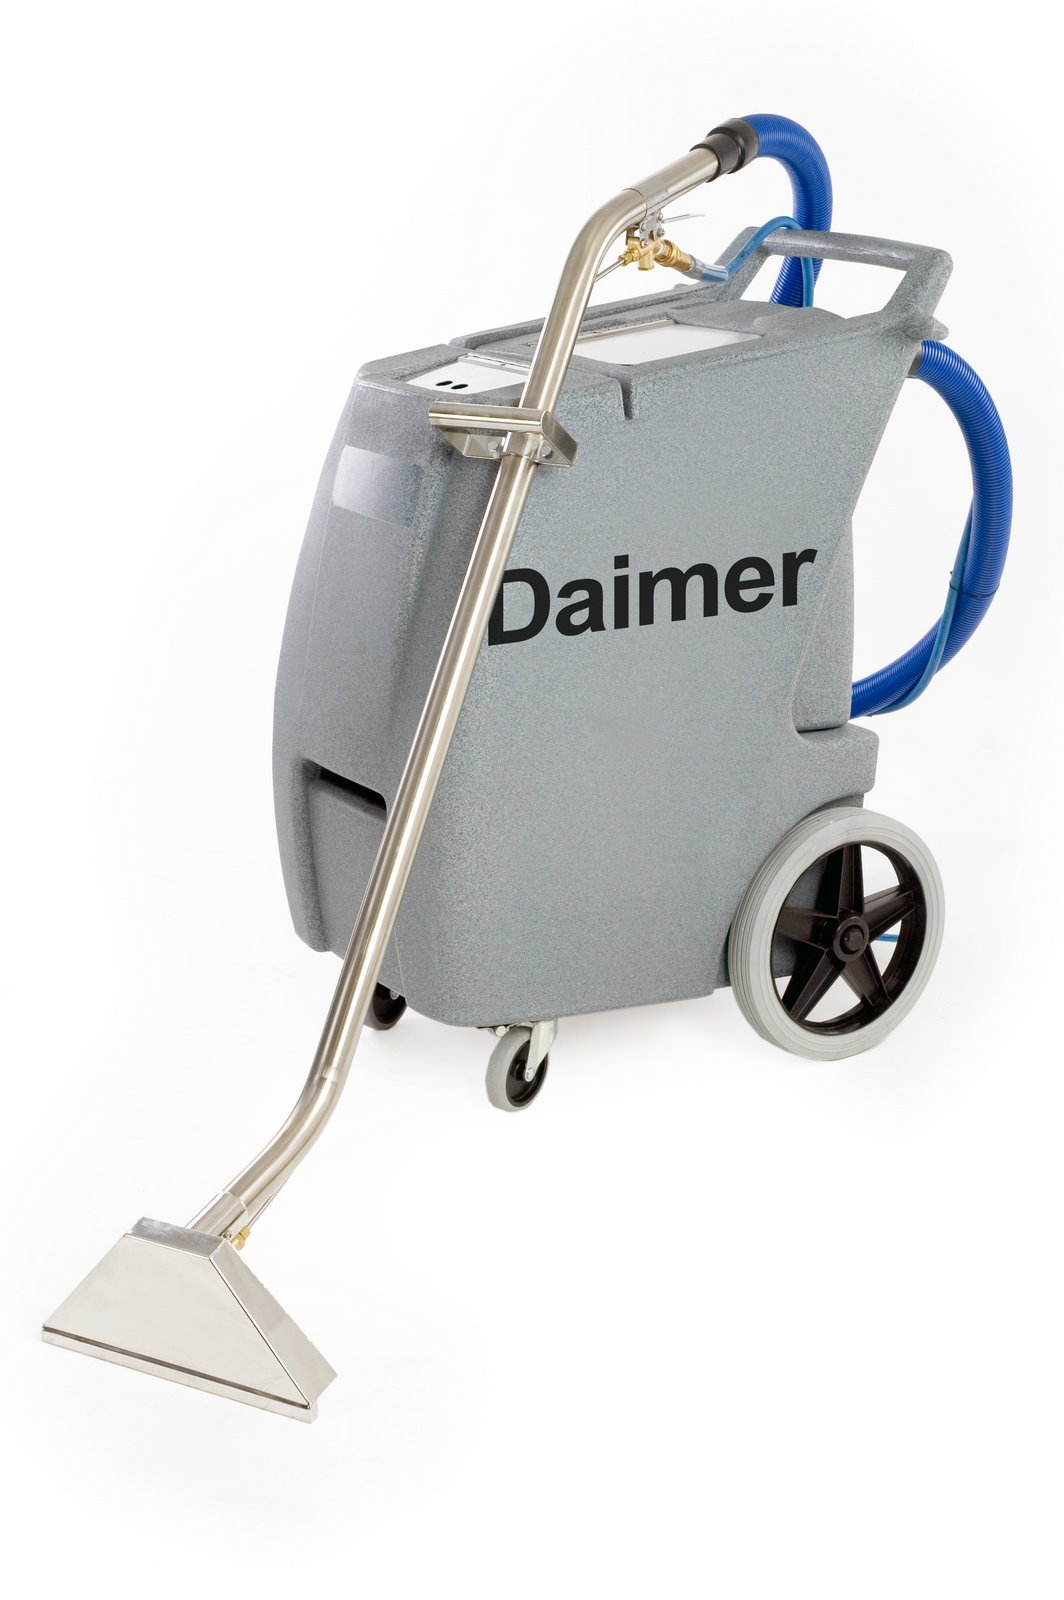 home carpet steam cleaning machine